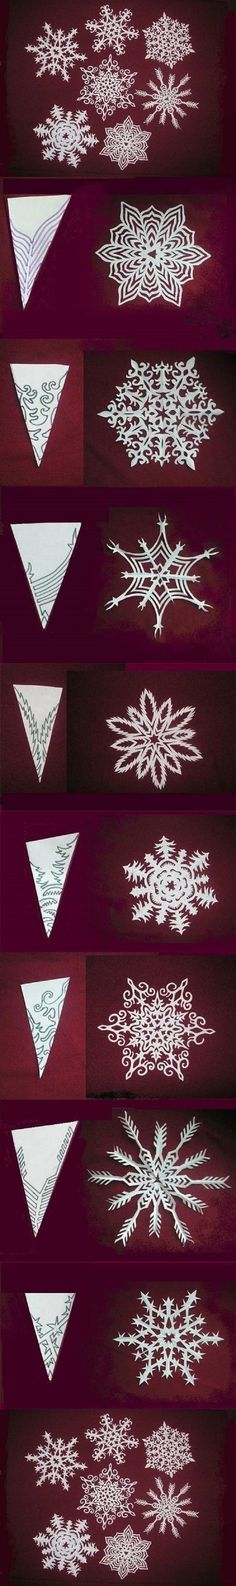 Wonderful DIY Paper Snowflakes With Pattern - 16 Winter Wonderland DIY Paper Decorations